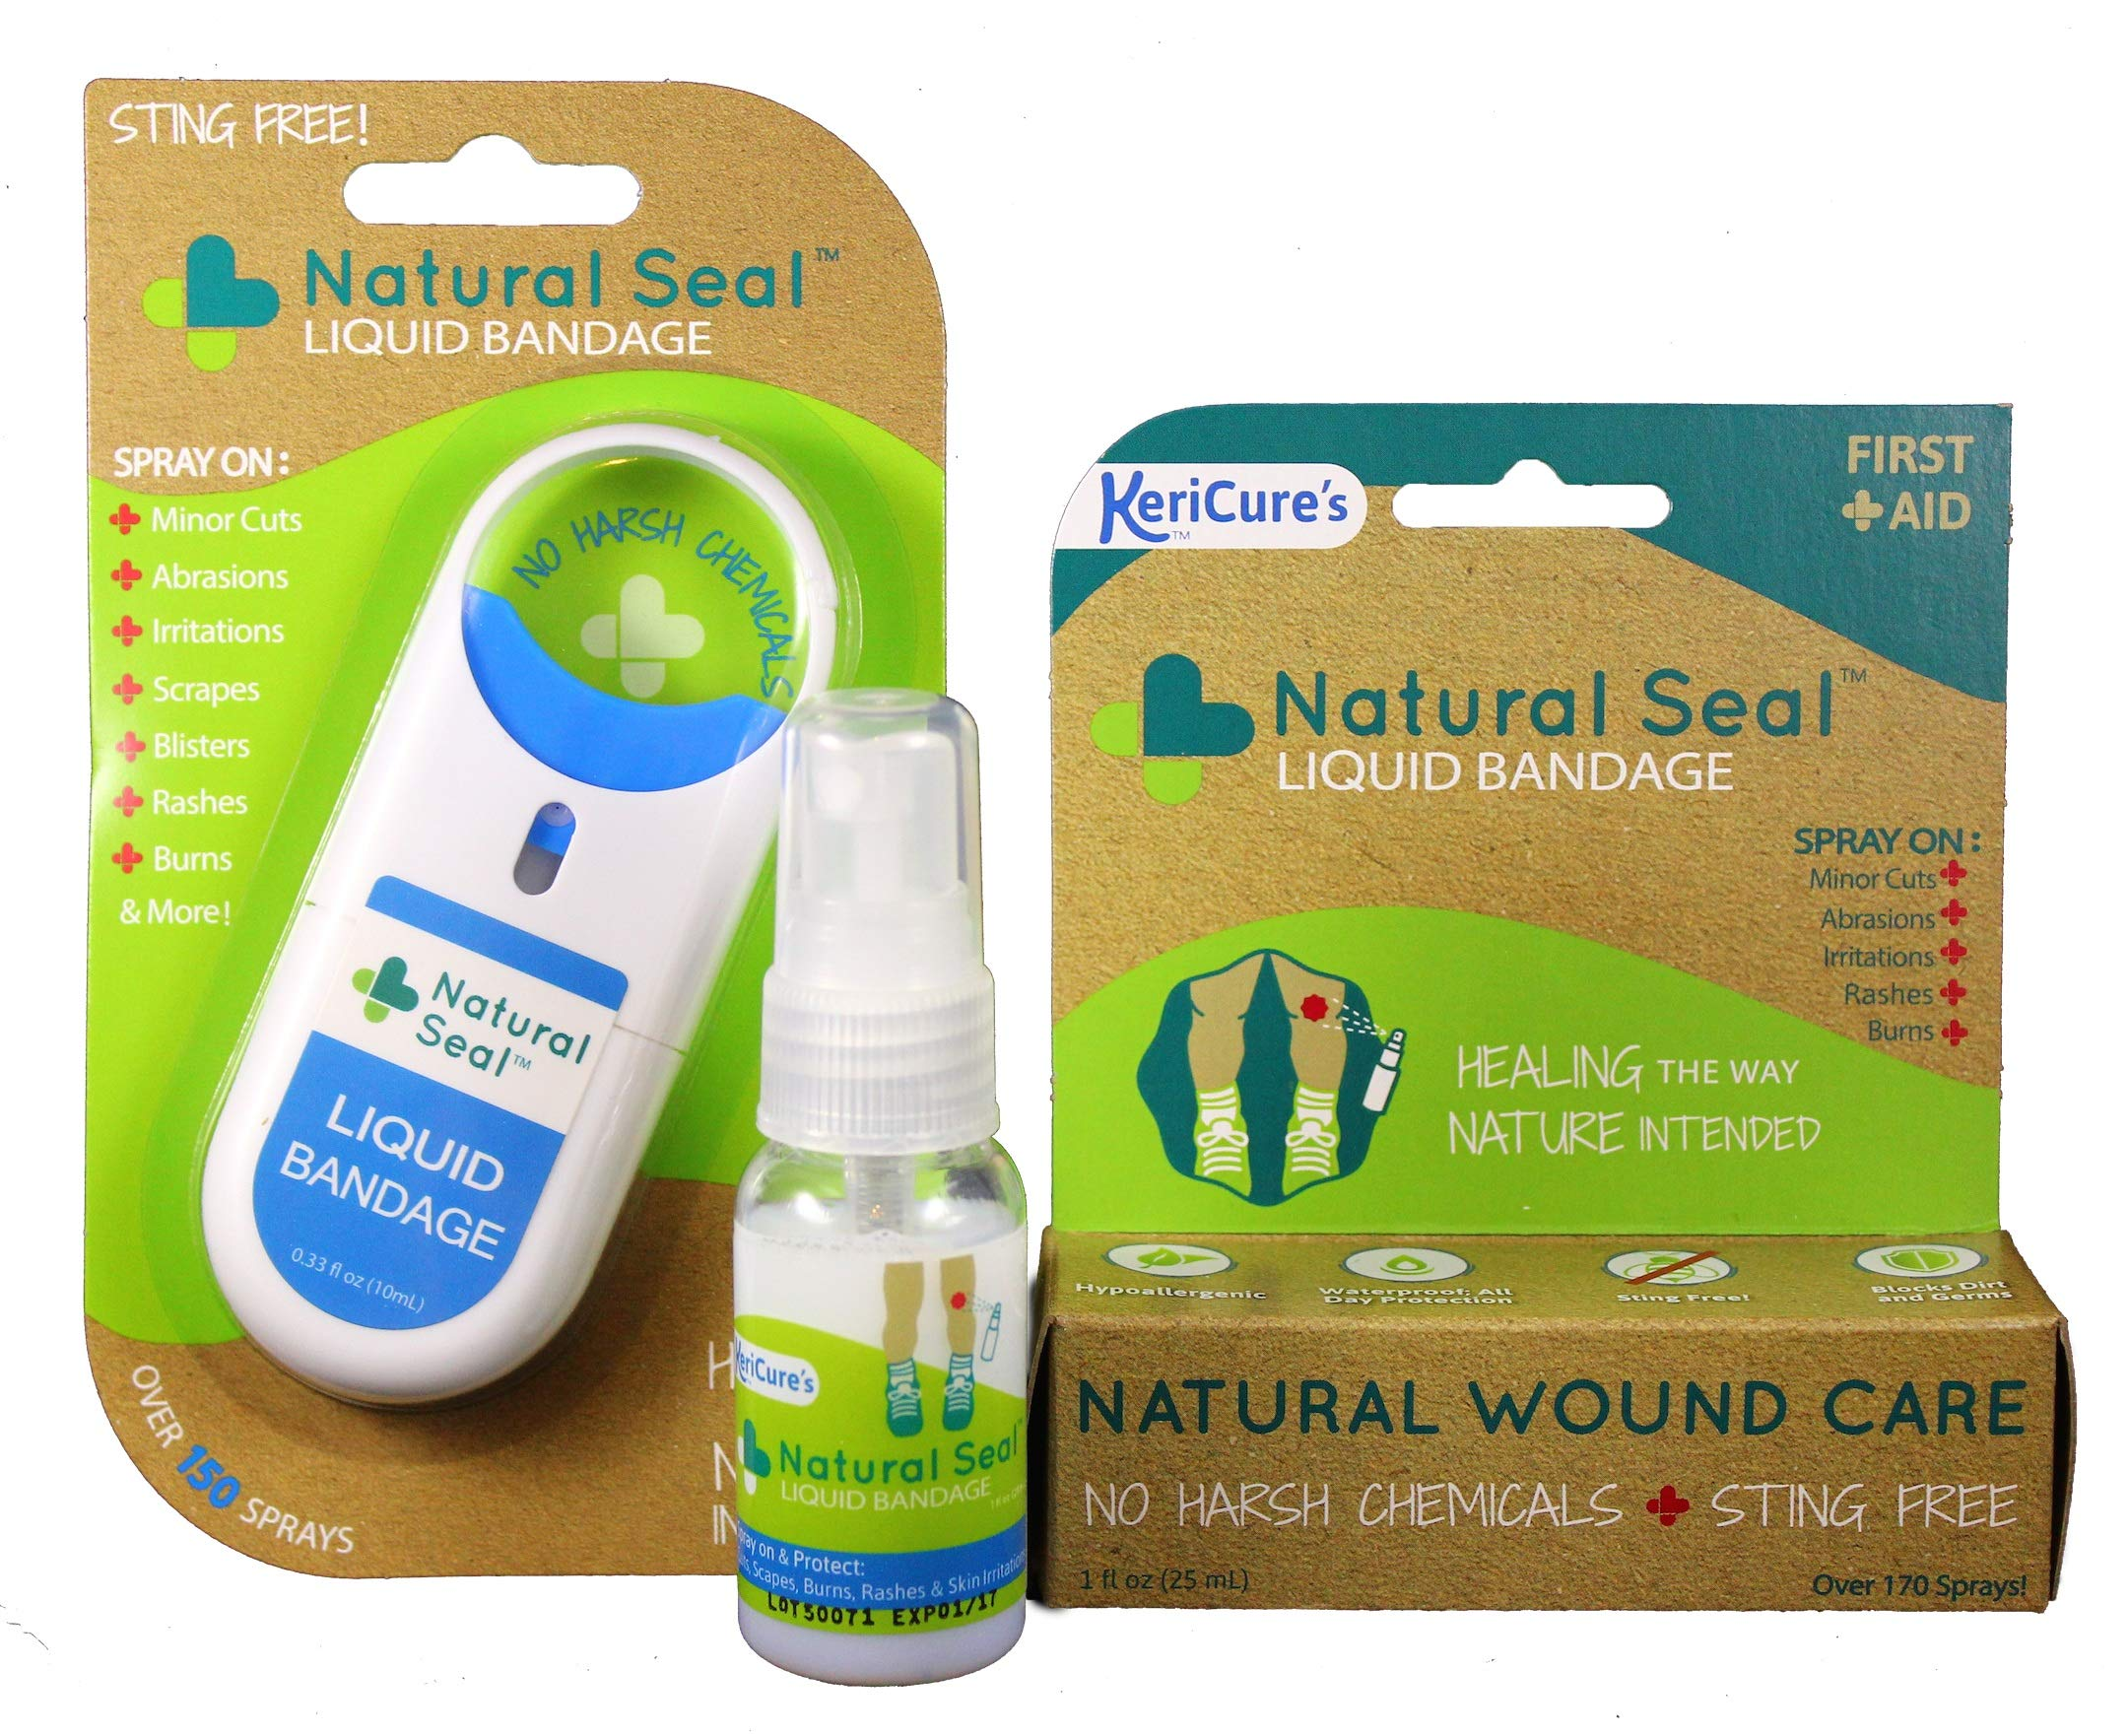 Natural Seal Liquid Bandage; Combination 2 Pack; Traditional 1oz Spray Plus On-The-Go Spray on Liquid Bandage; Sting Free, Natural, Safe and Effective by KeriCure